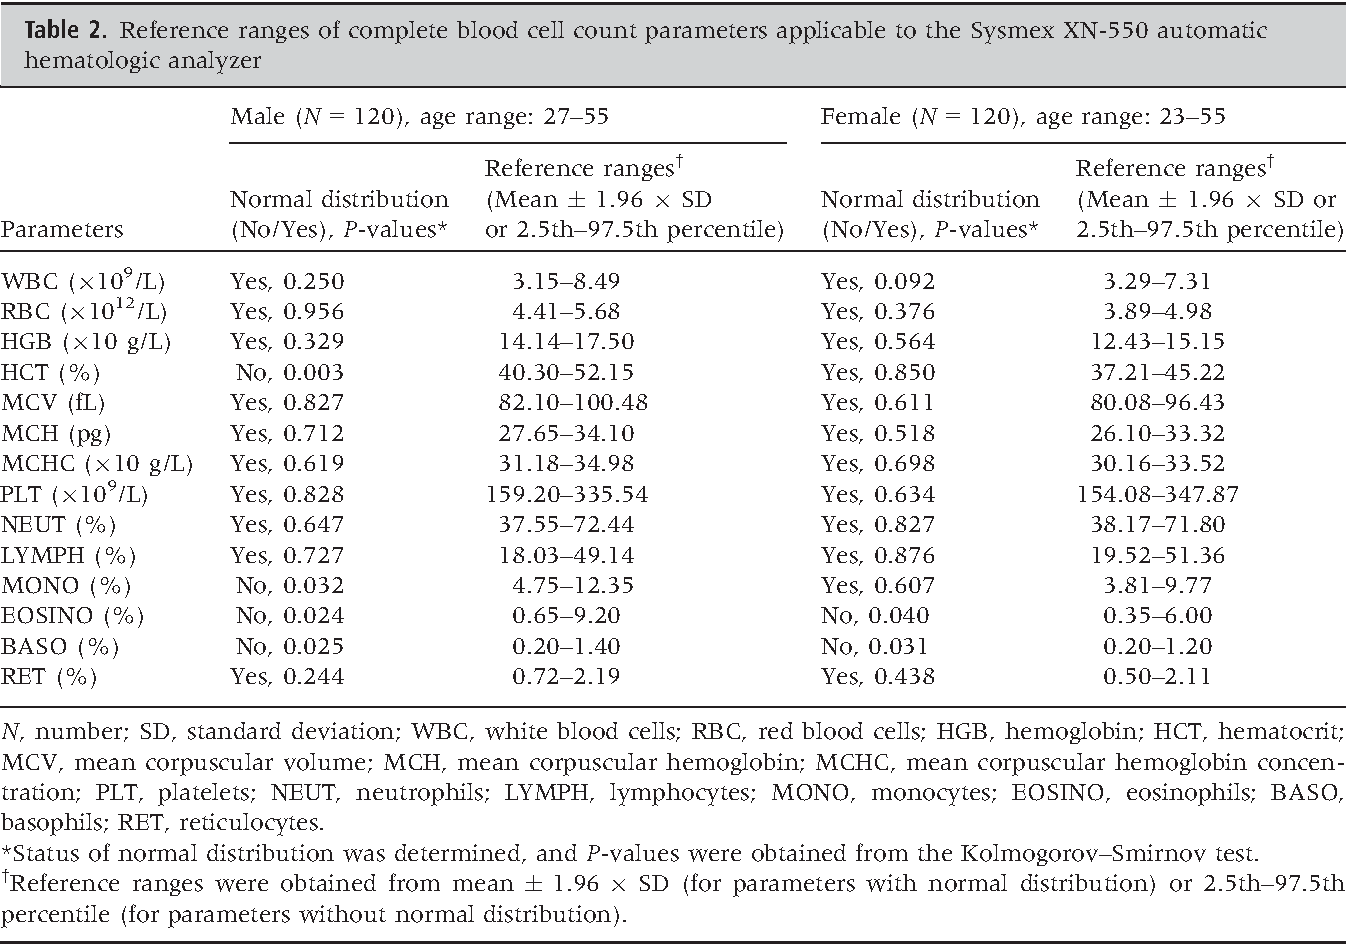 Table 2 from Performance evaluation of recently launched Sysmex XN